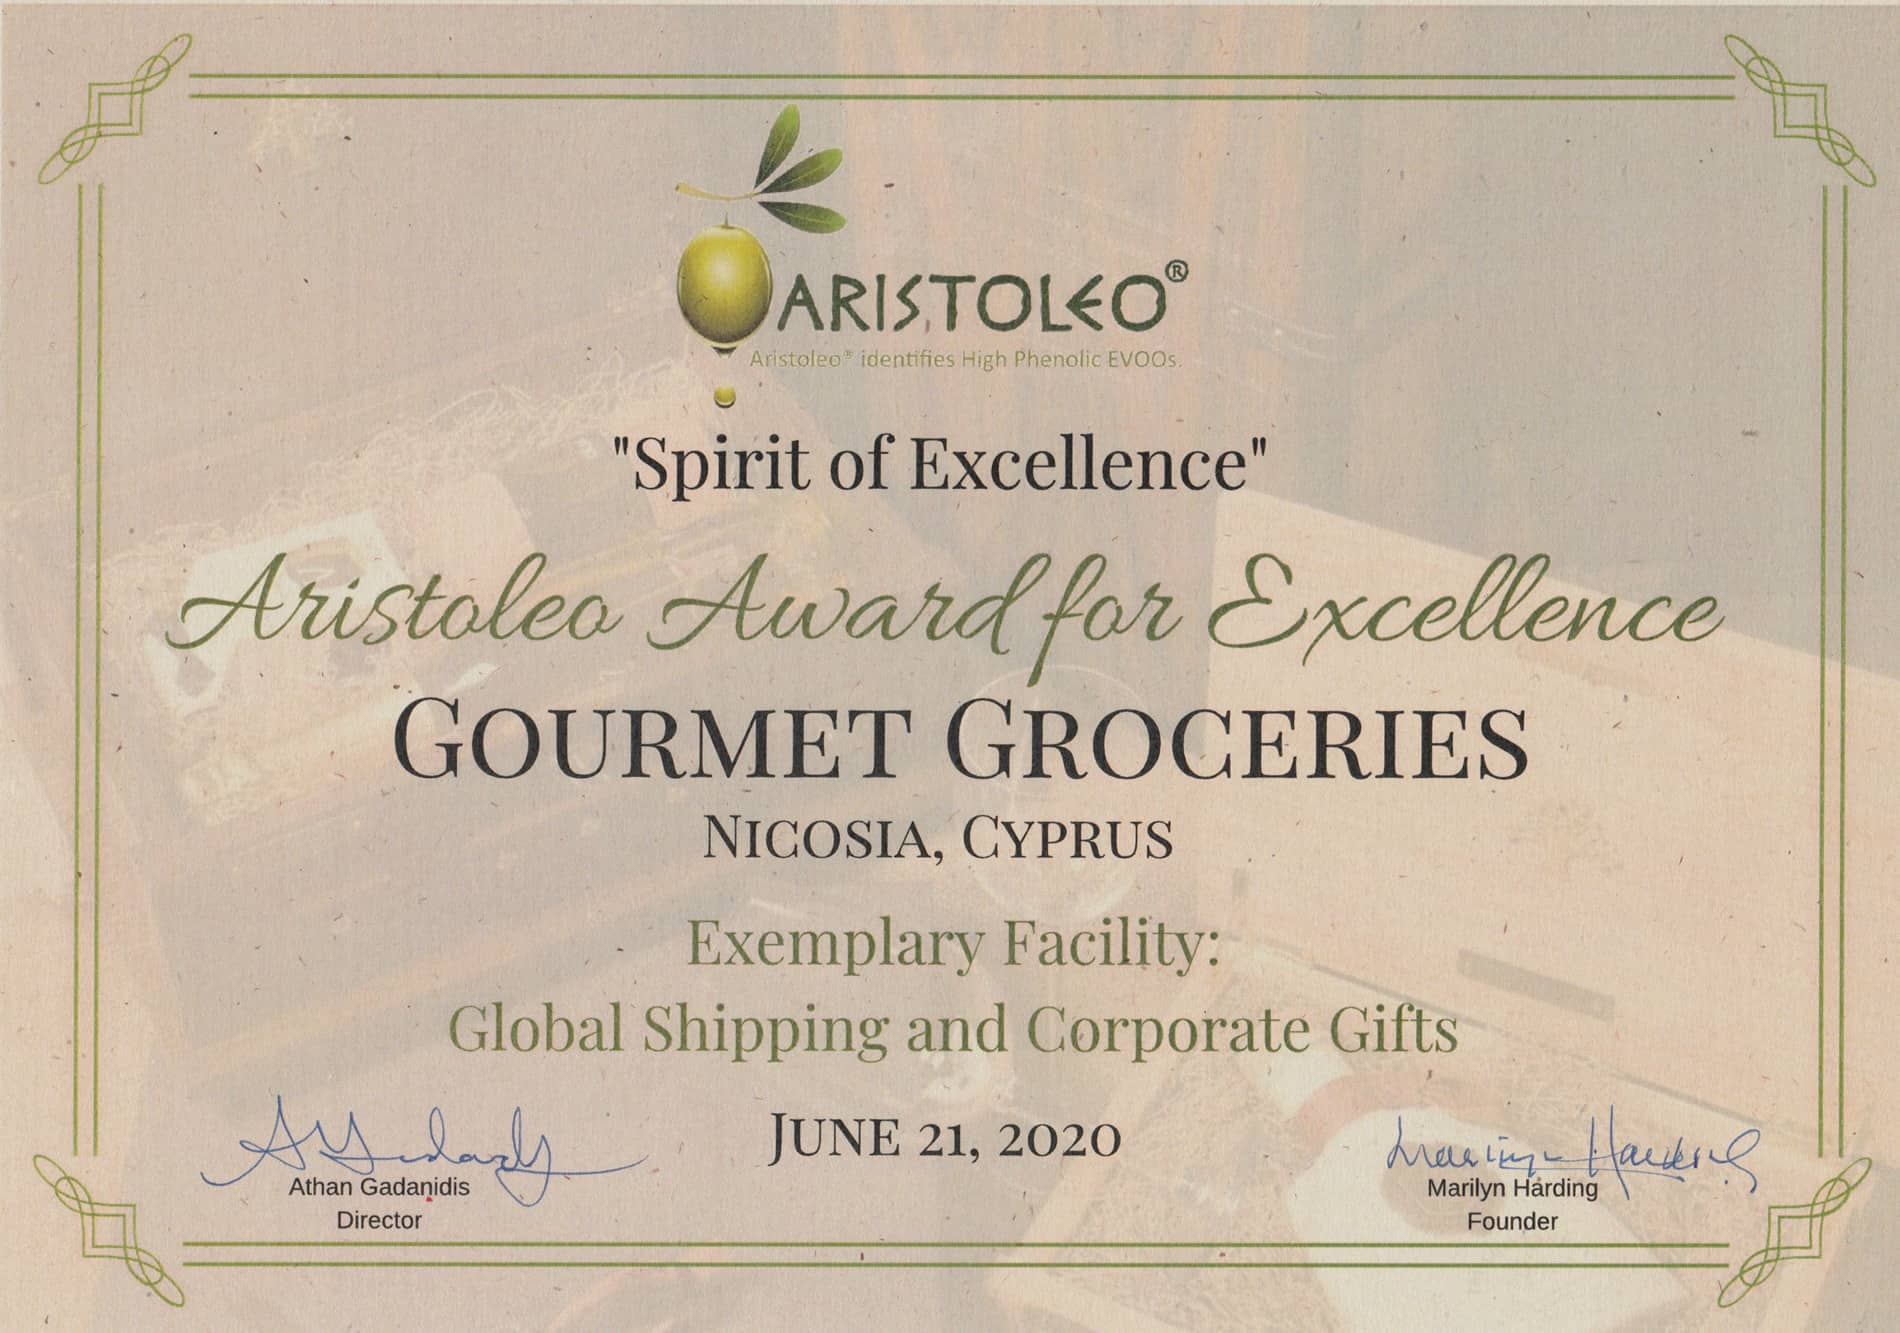 Aristoleo Award 2020 - Gourmet Groceries